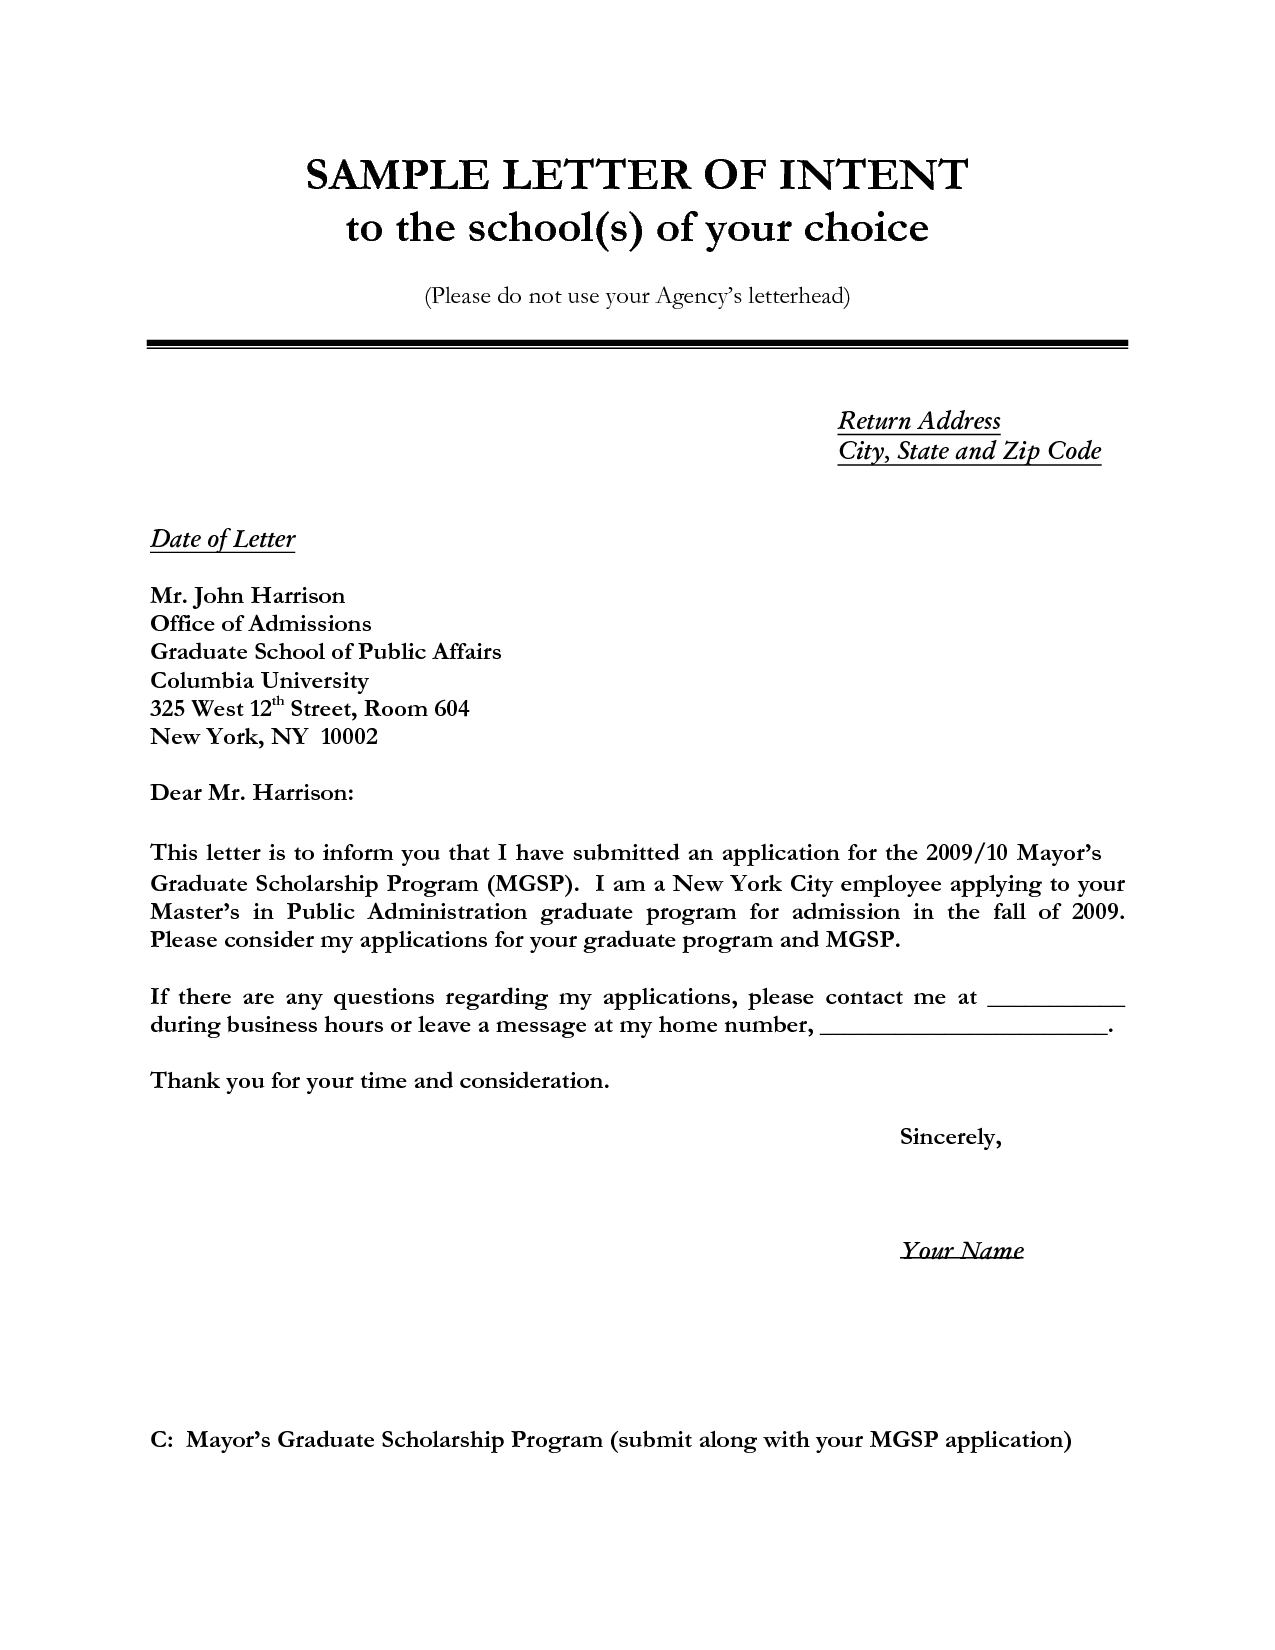 Letter Of Intent Template Microsoft Word Samples Letter Templates - Business hours template word